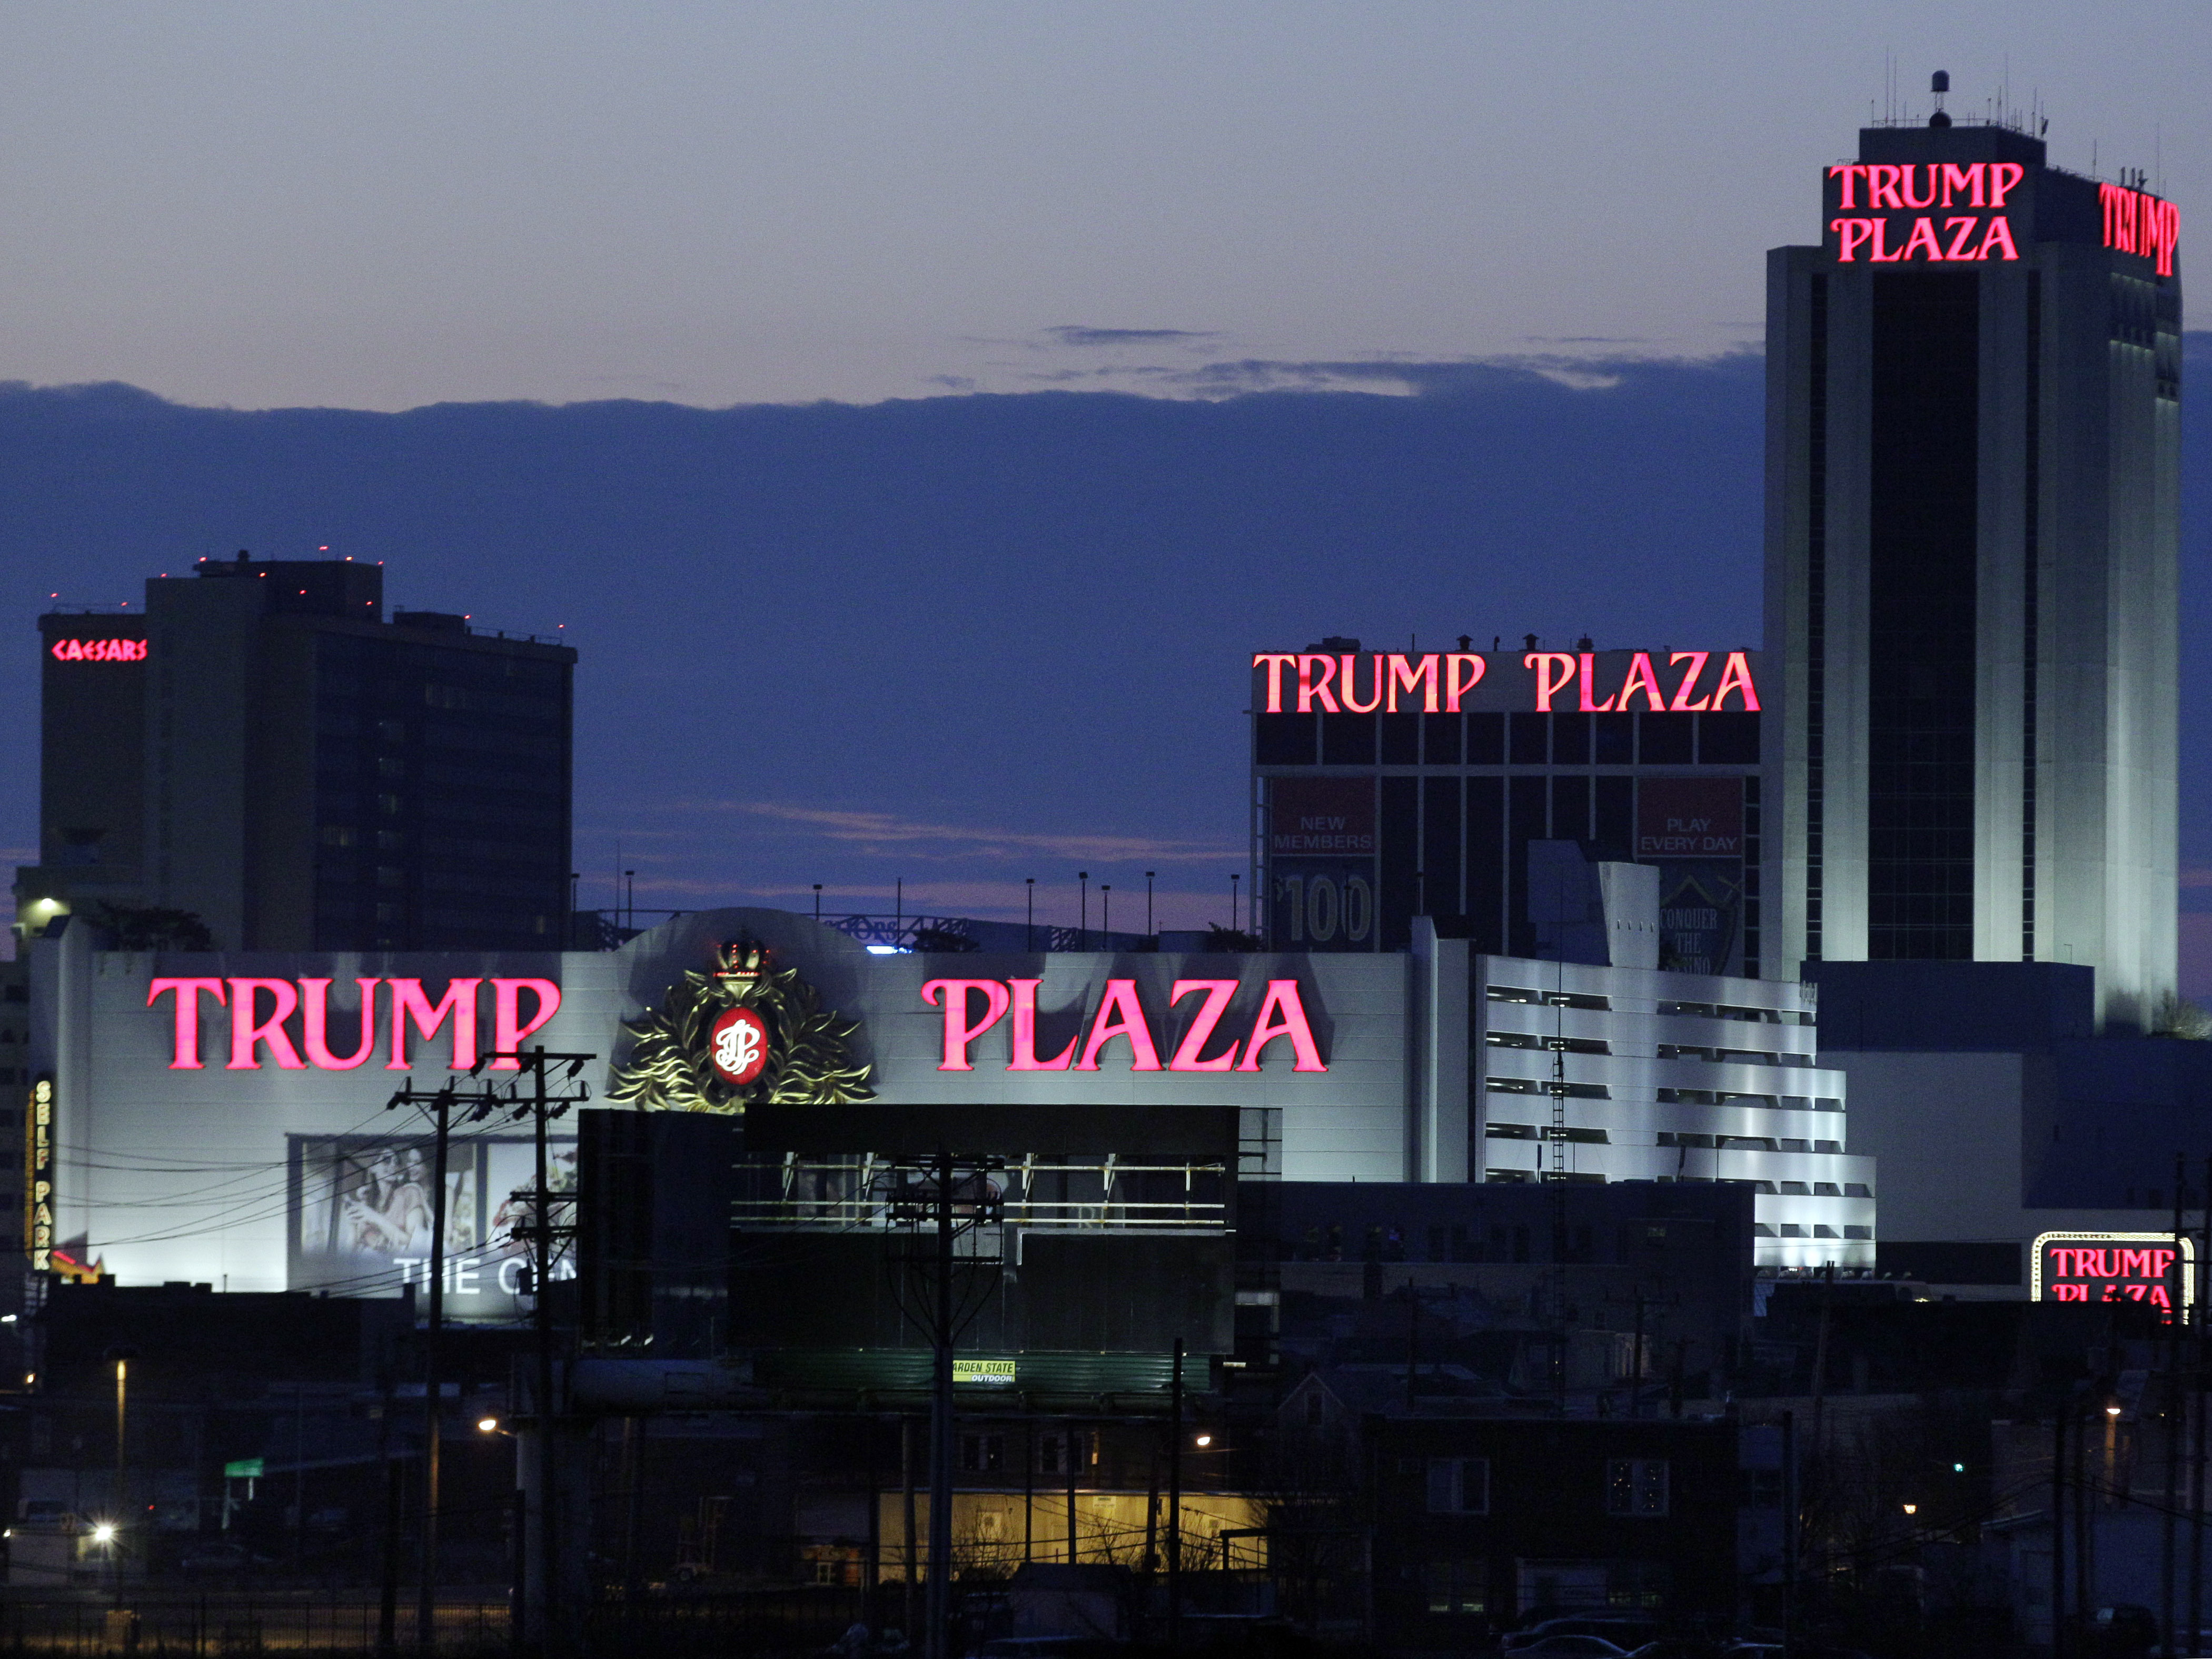 The Trump Plaza Hotel and Casino in Atlantic City before it closed on Sept. 16, 2014. (Photo by Mel Evans/Associated Press)